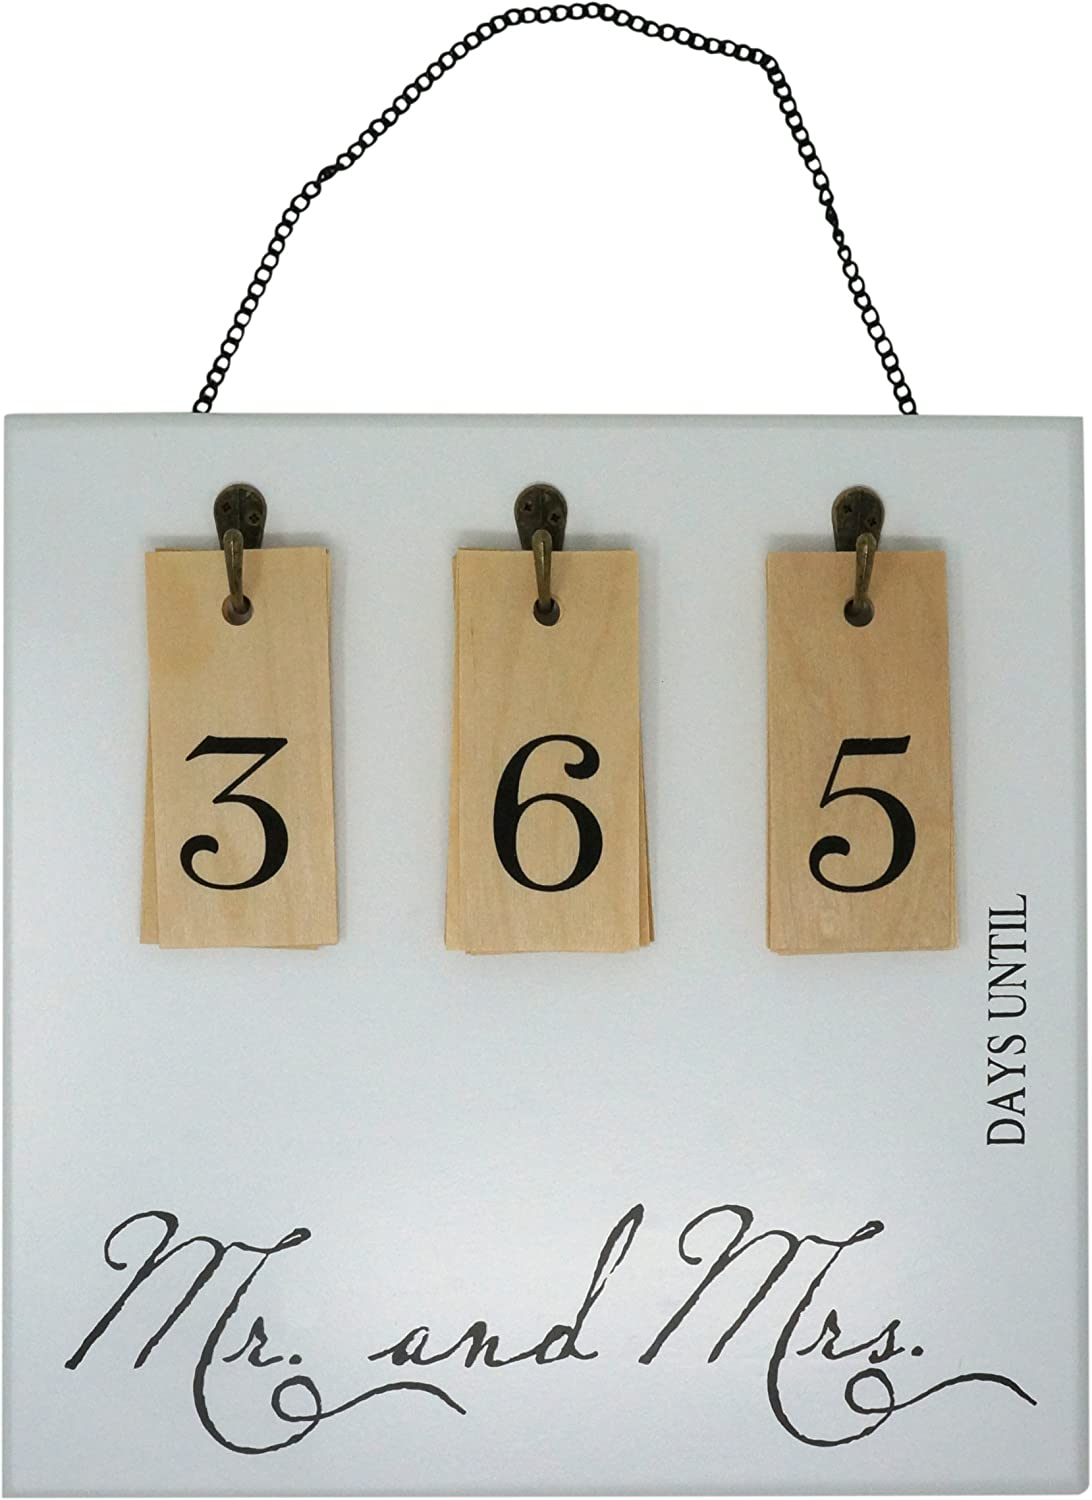 Rubies & Ribbons Mr and Mrs Hanging Wedding Countdown Calendar Wall Sign with Removable Numbers